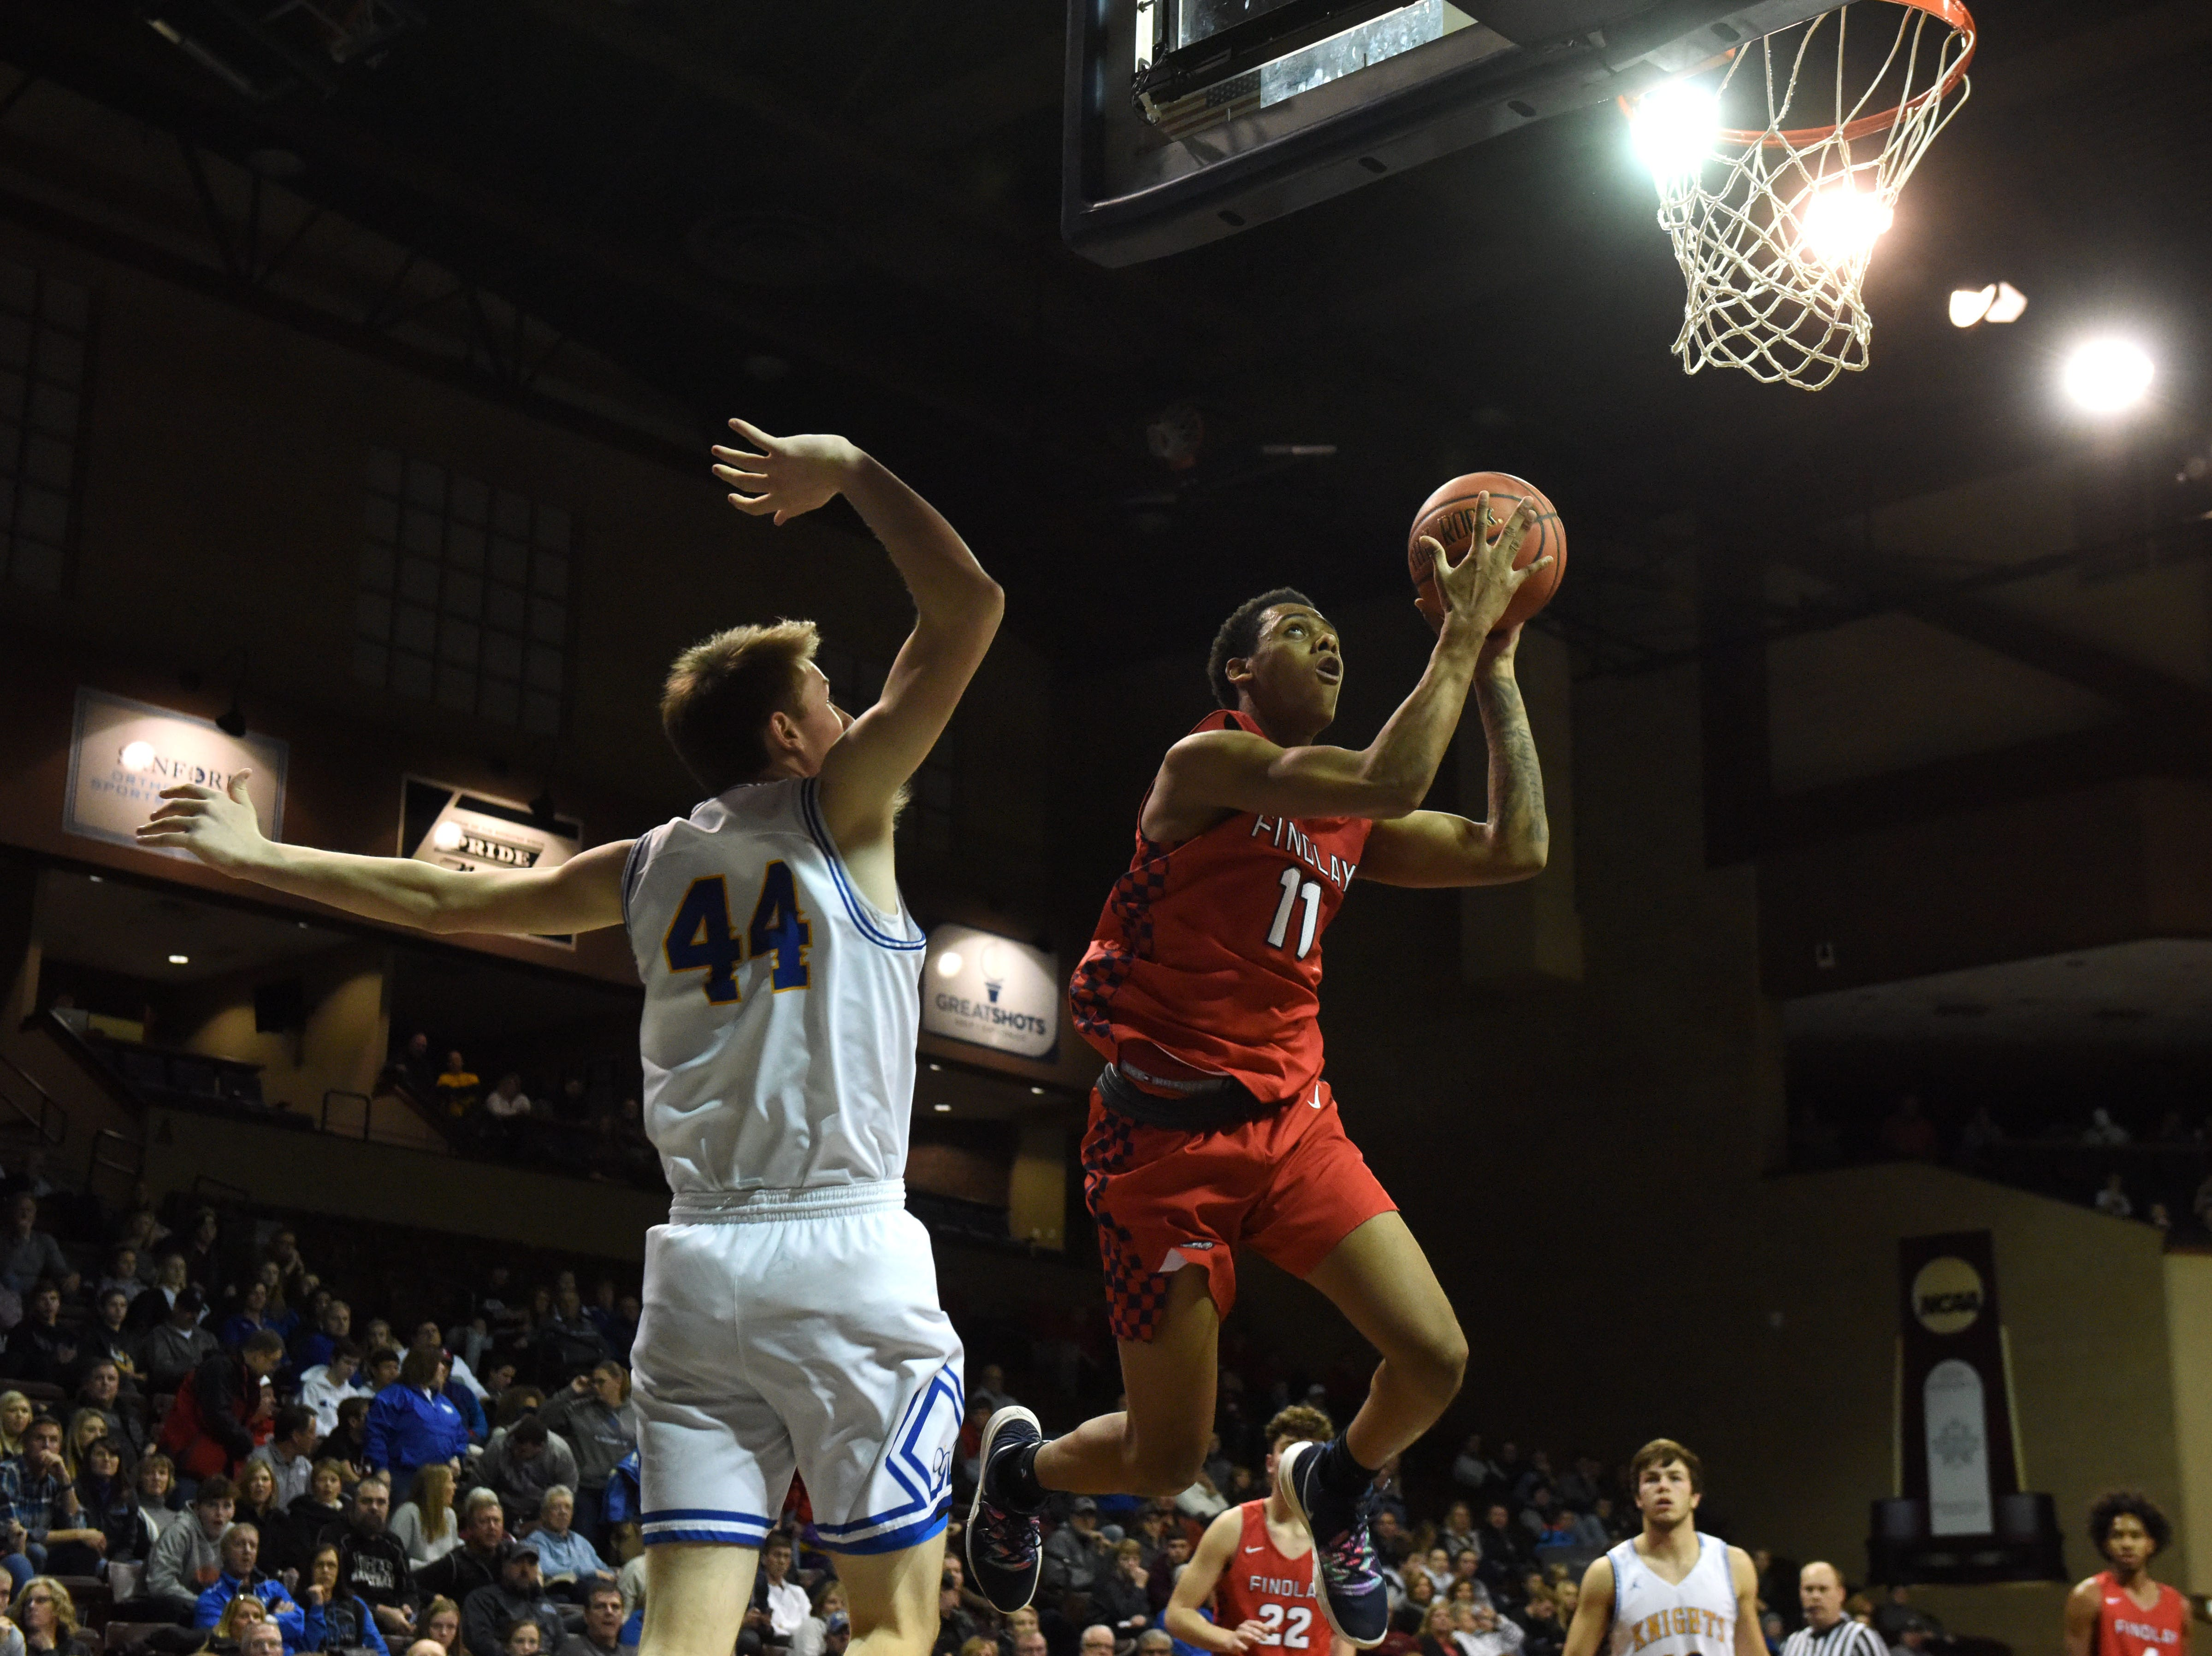 Findlay Prep's Taryn Todd (11) goes up for a shot during a game against O'Gorman at the Hoop City Classic at the Sanford Pentagon in Sioux Falls, S.D., Saturday, Dec. 29, 2018.